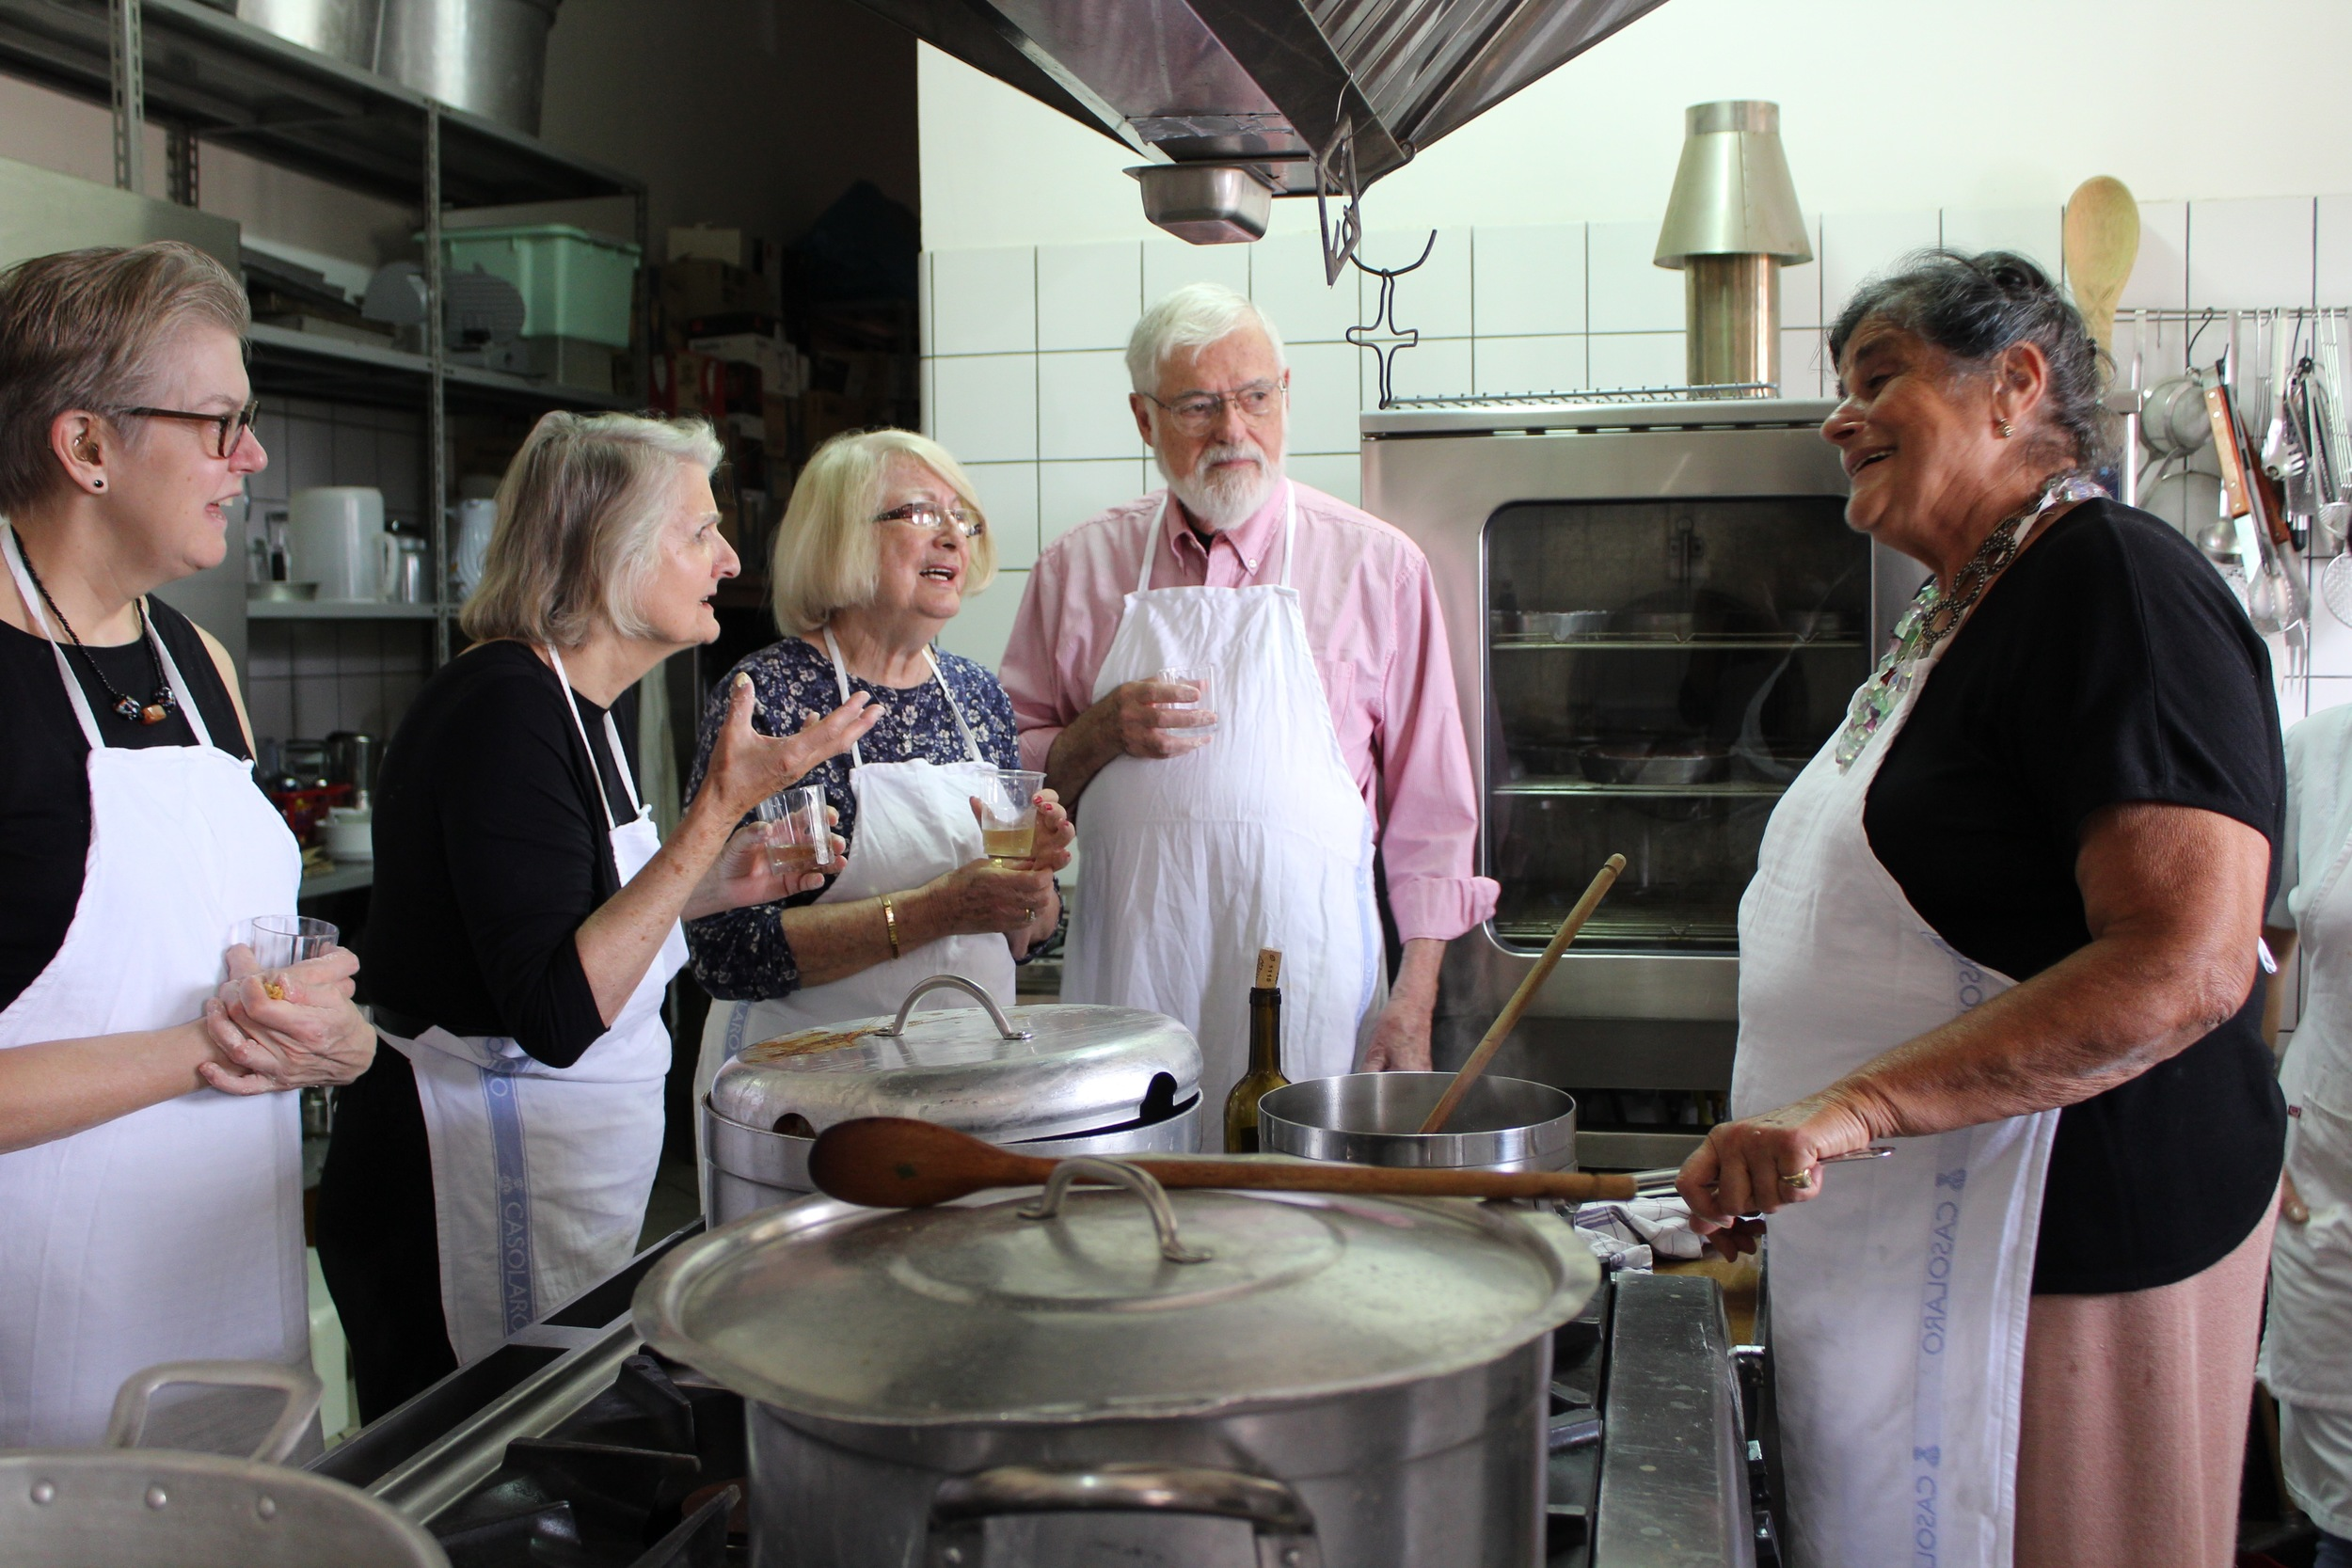 Baronessa Cecilia Baratta Belleli teaches cooking class guests how to make ragú in her farmhouse kitchen in Paestum.